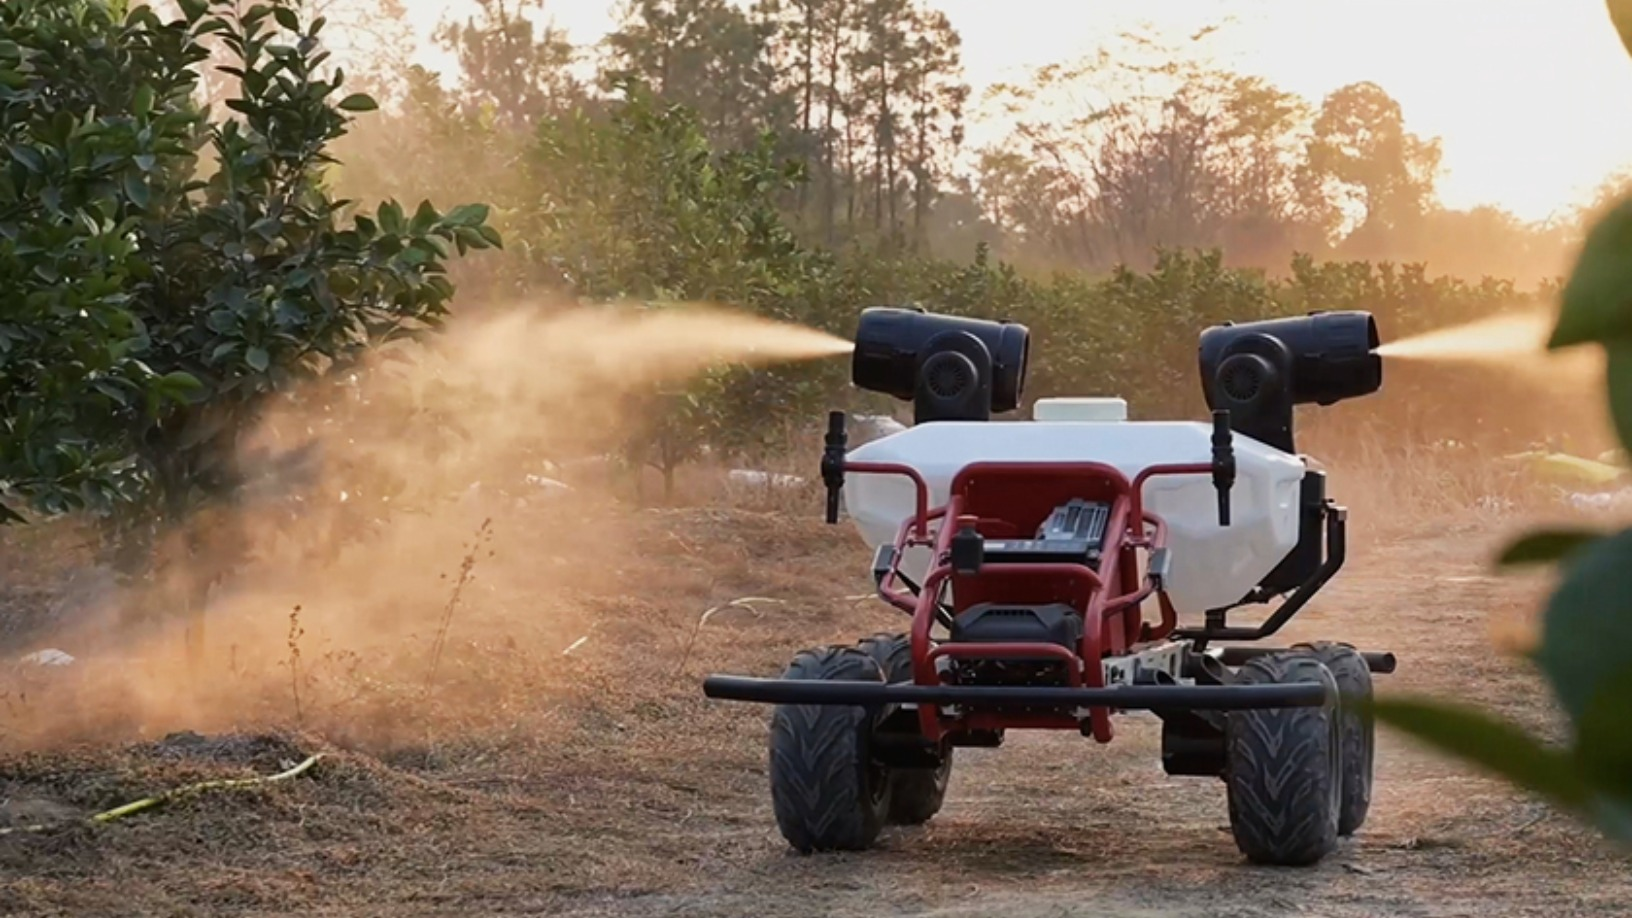 With recent funding of $182m, drone maker XAG is set to make its mark as agritech leader